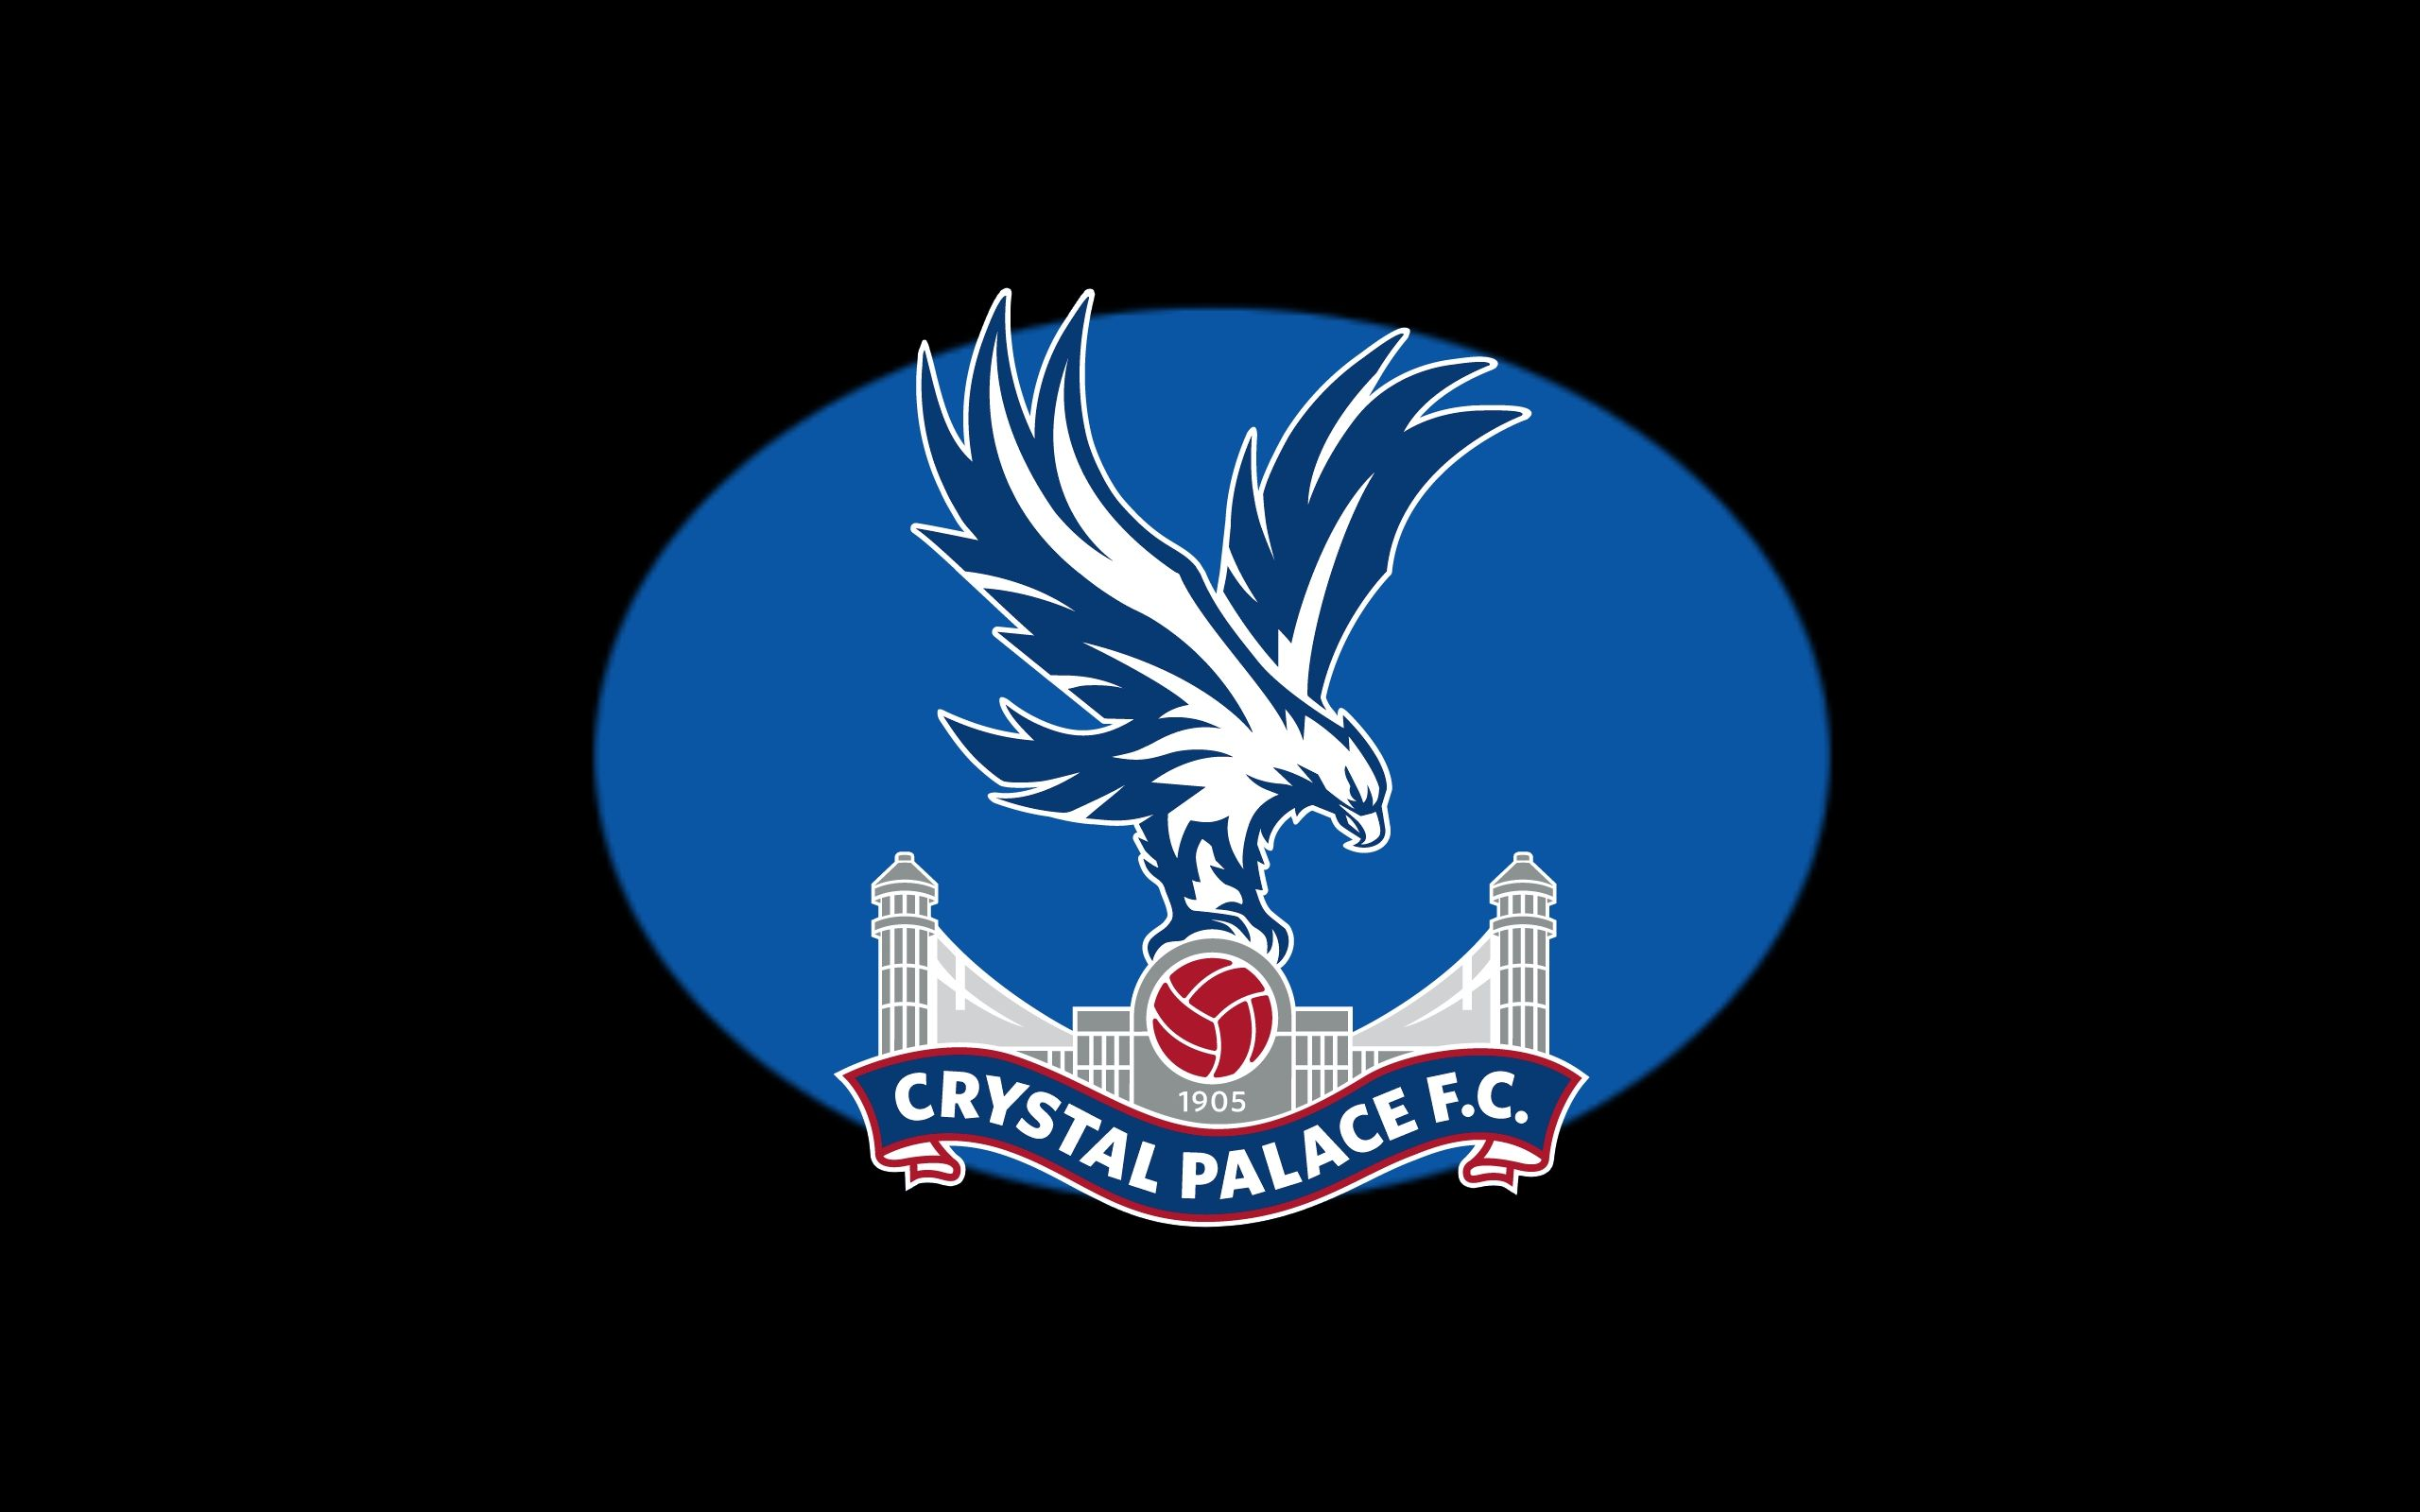 Pin Di Valentino Calori Su Pin Calcio UK-Crystal Palace